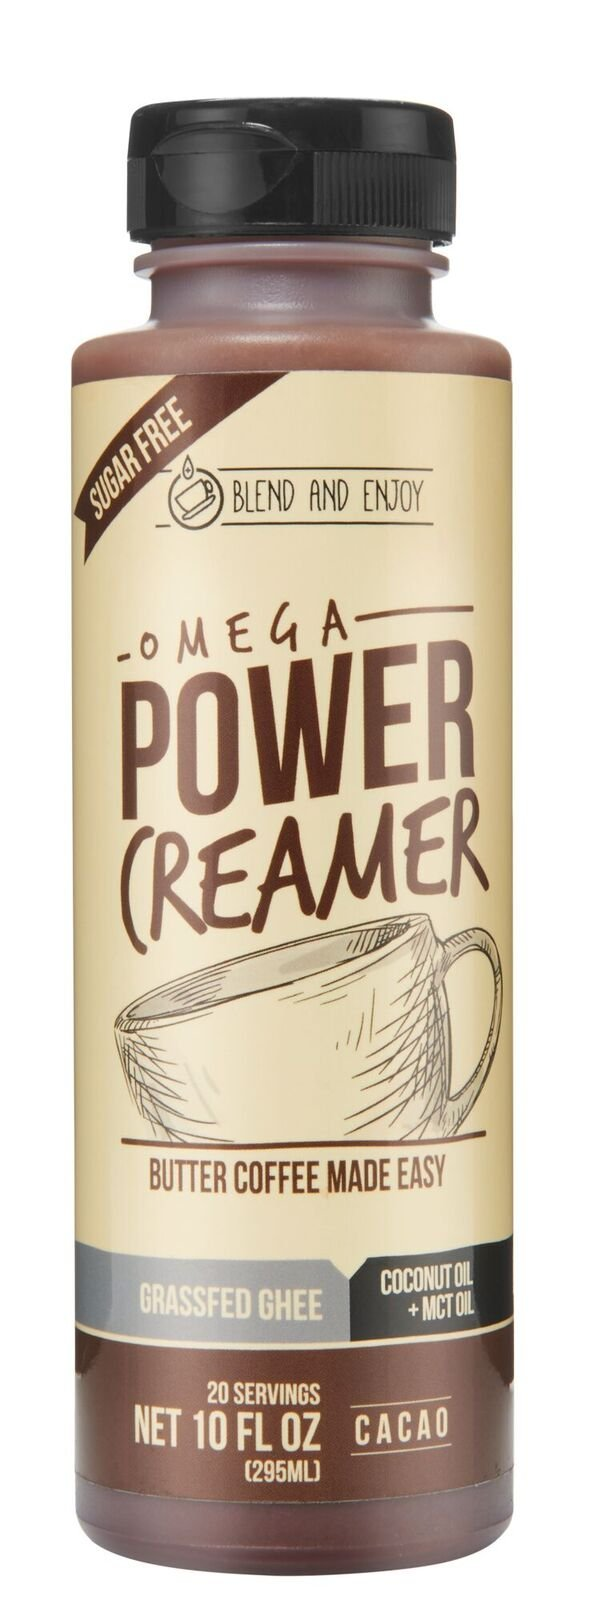 Omega powercreamer made with grass fed organic ghee organic omega powercreamer cacao made with grass fed organic ghee butter organic coconut malvernweather Image collections